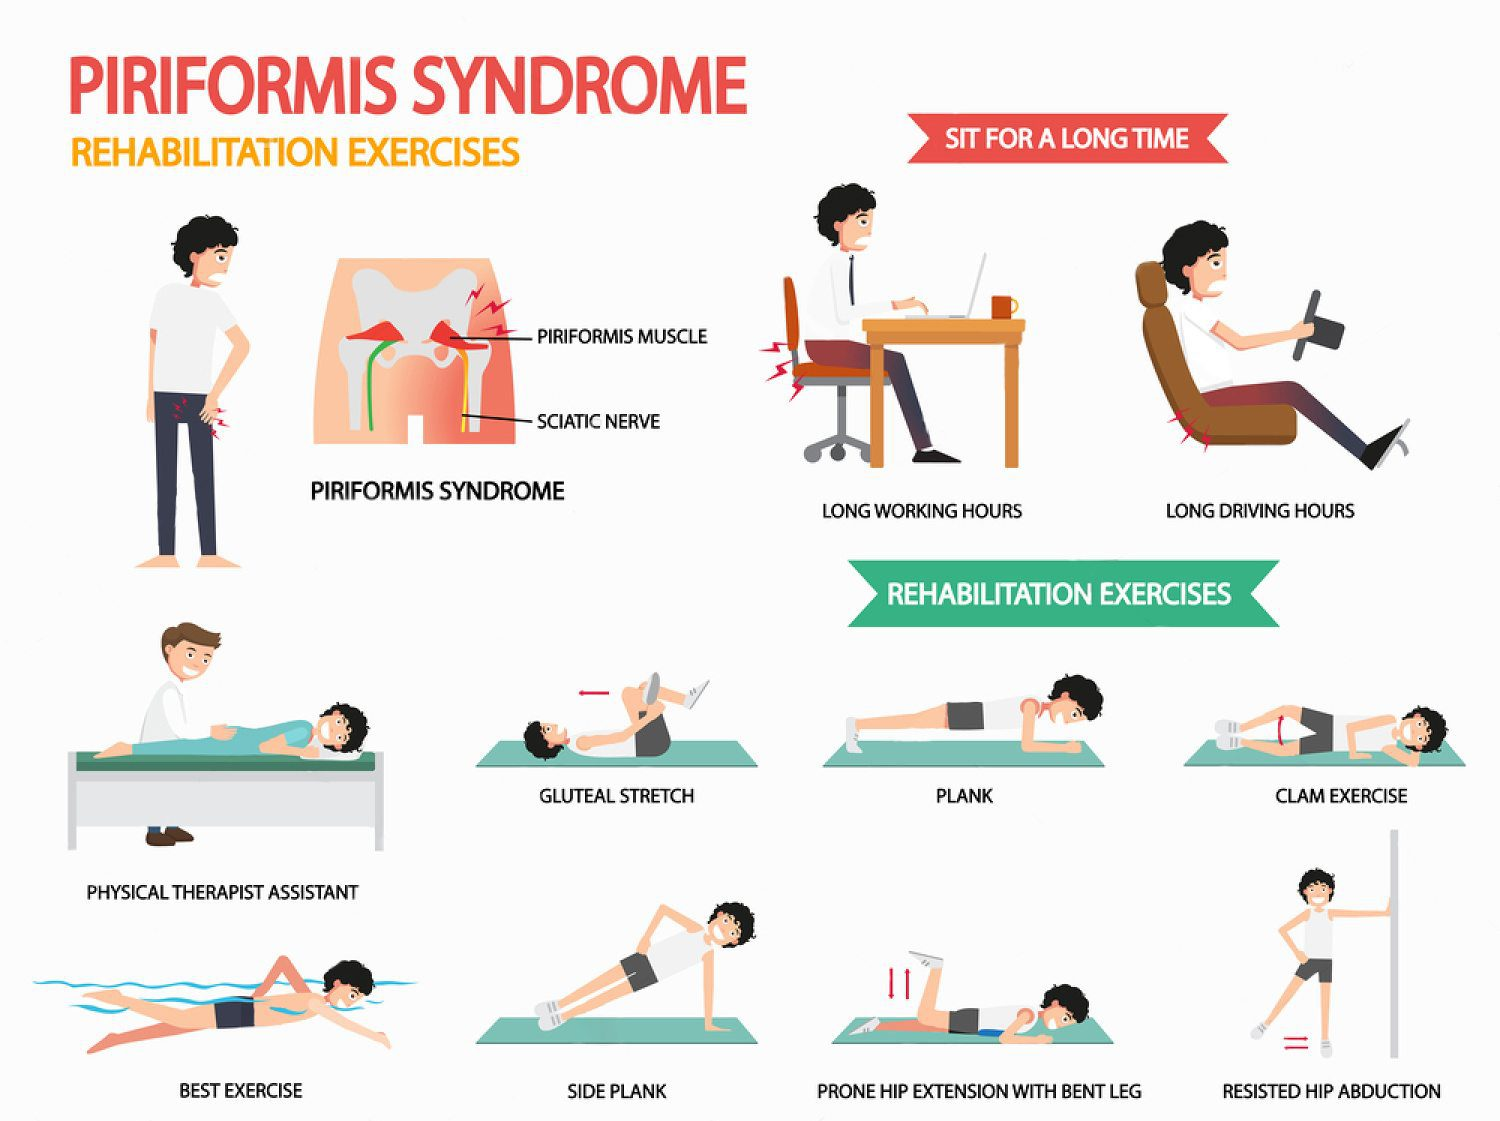 piriformis syndrome rehabilitation exercises